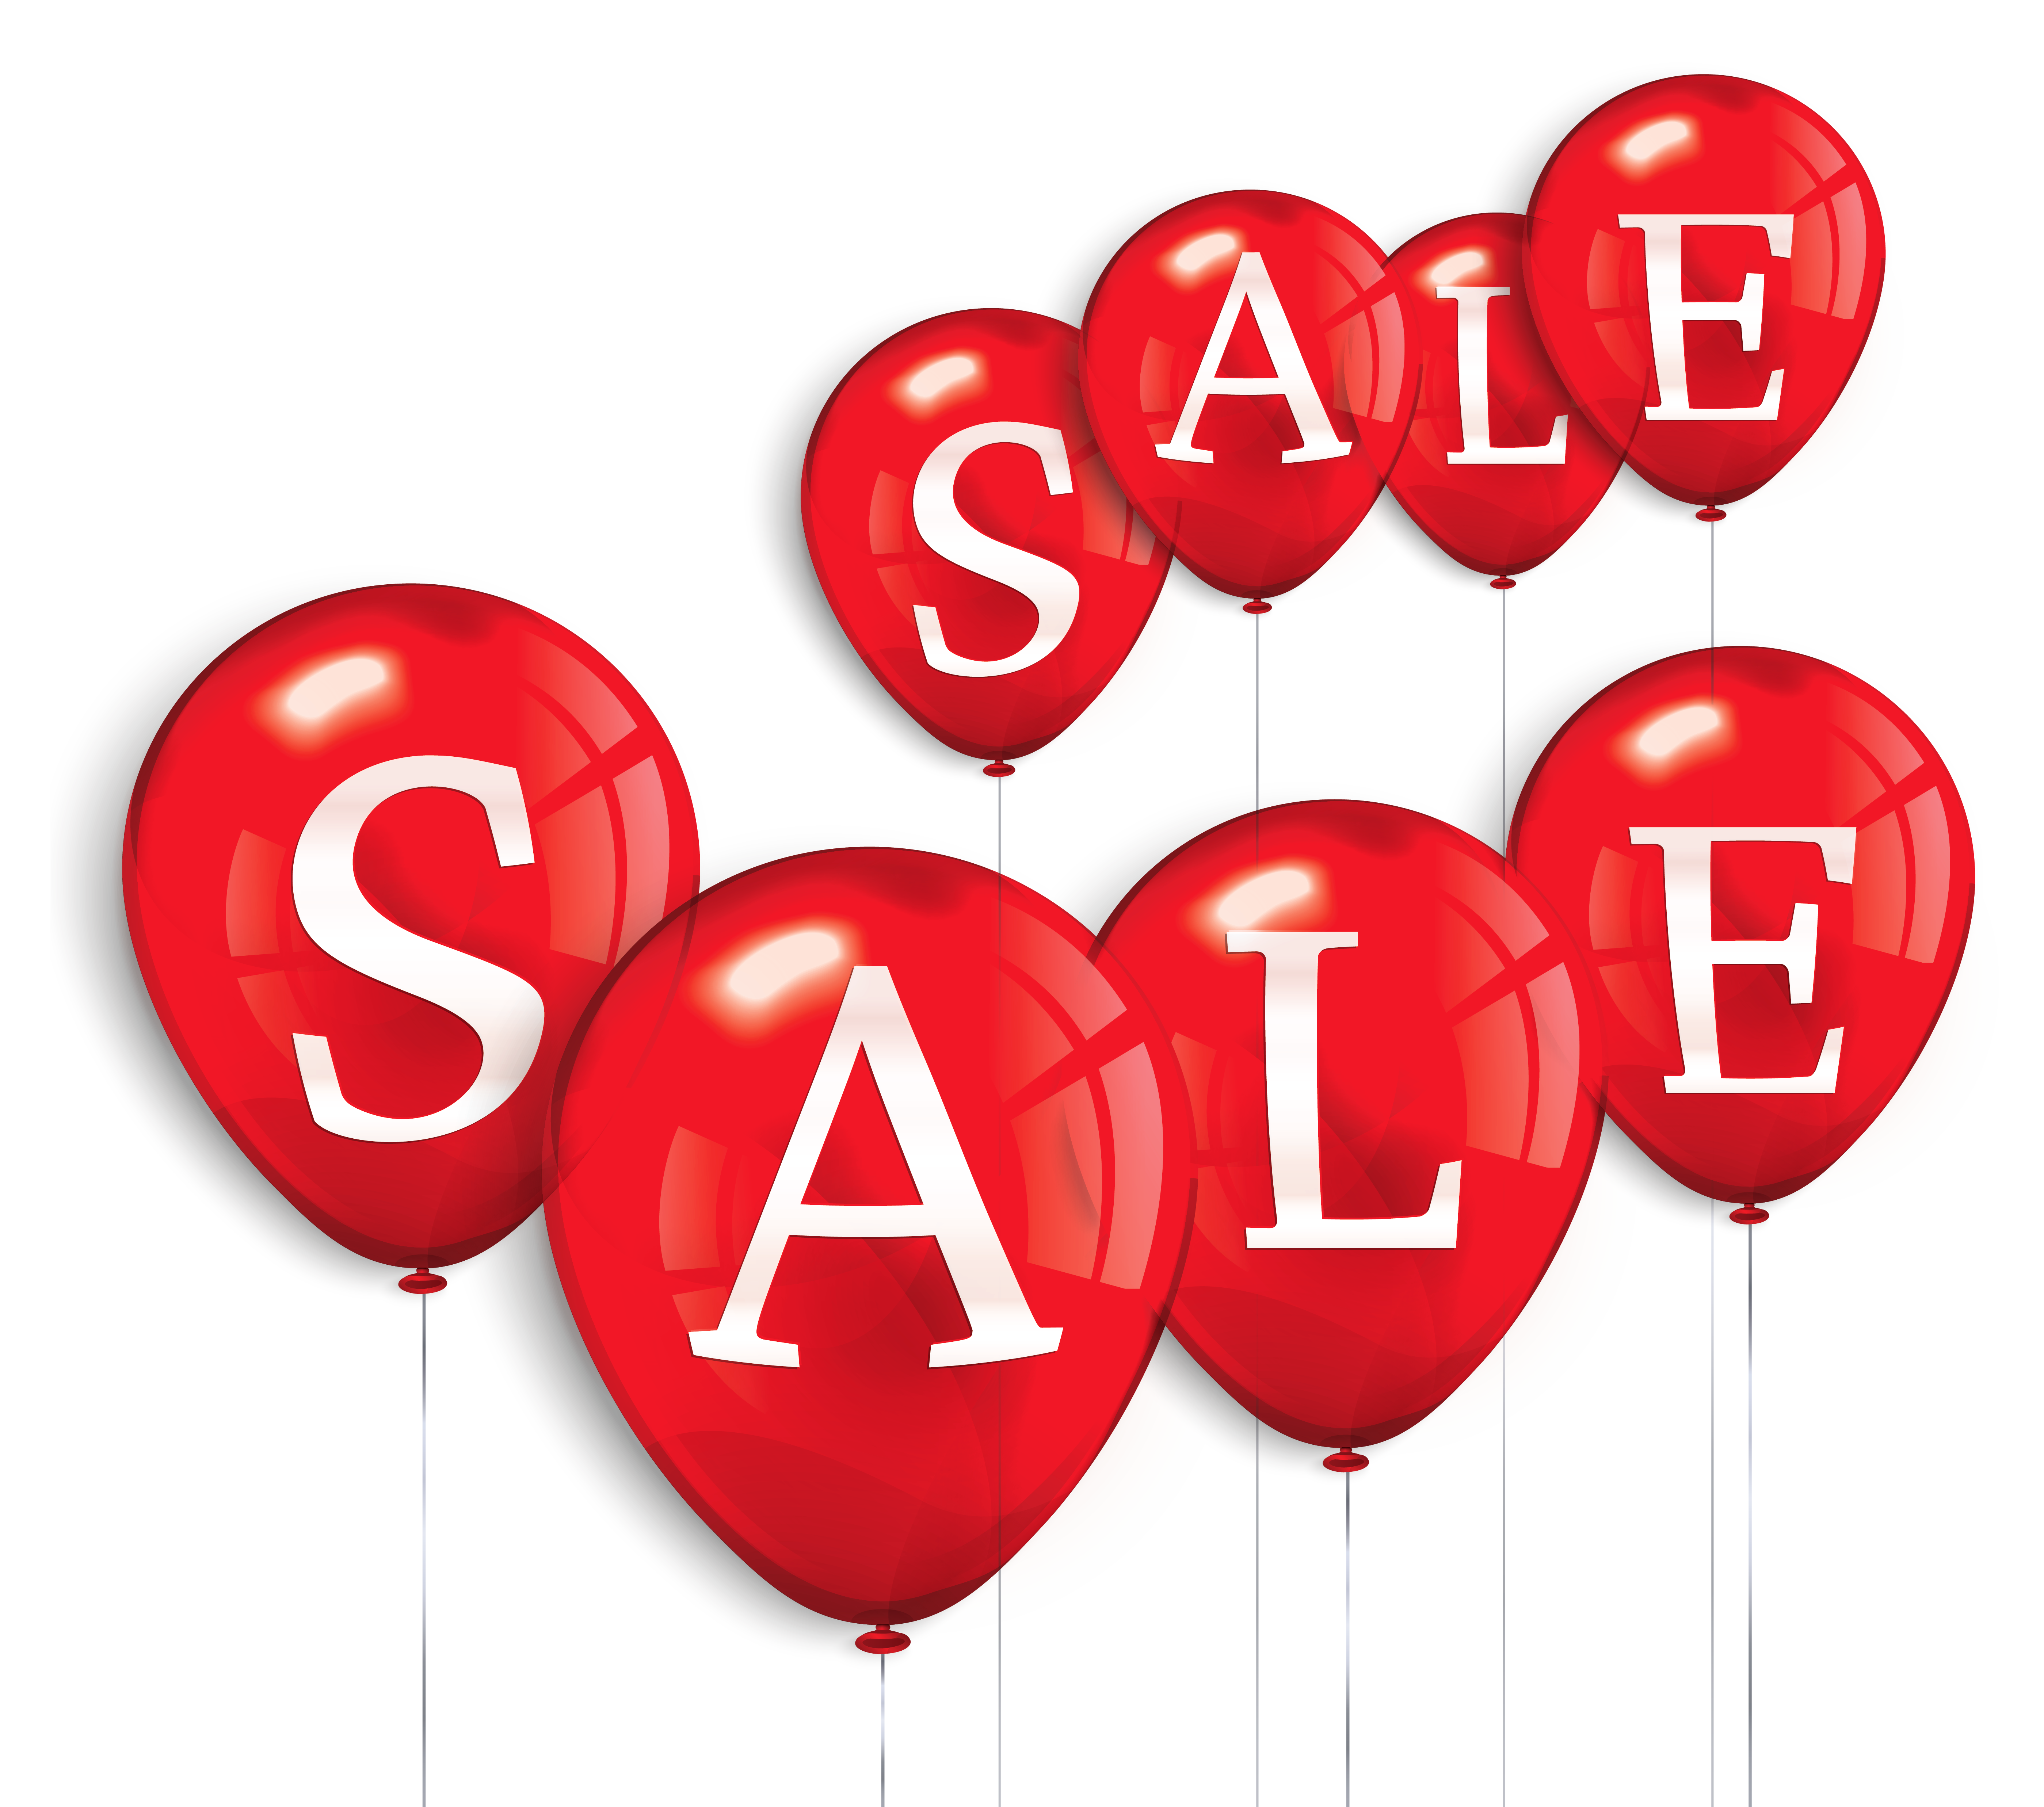 Sale clipart. Balloons png picture gallery